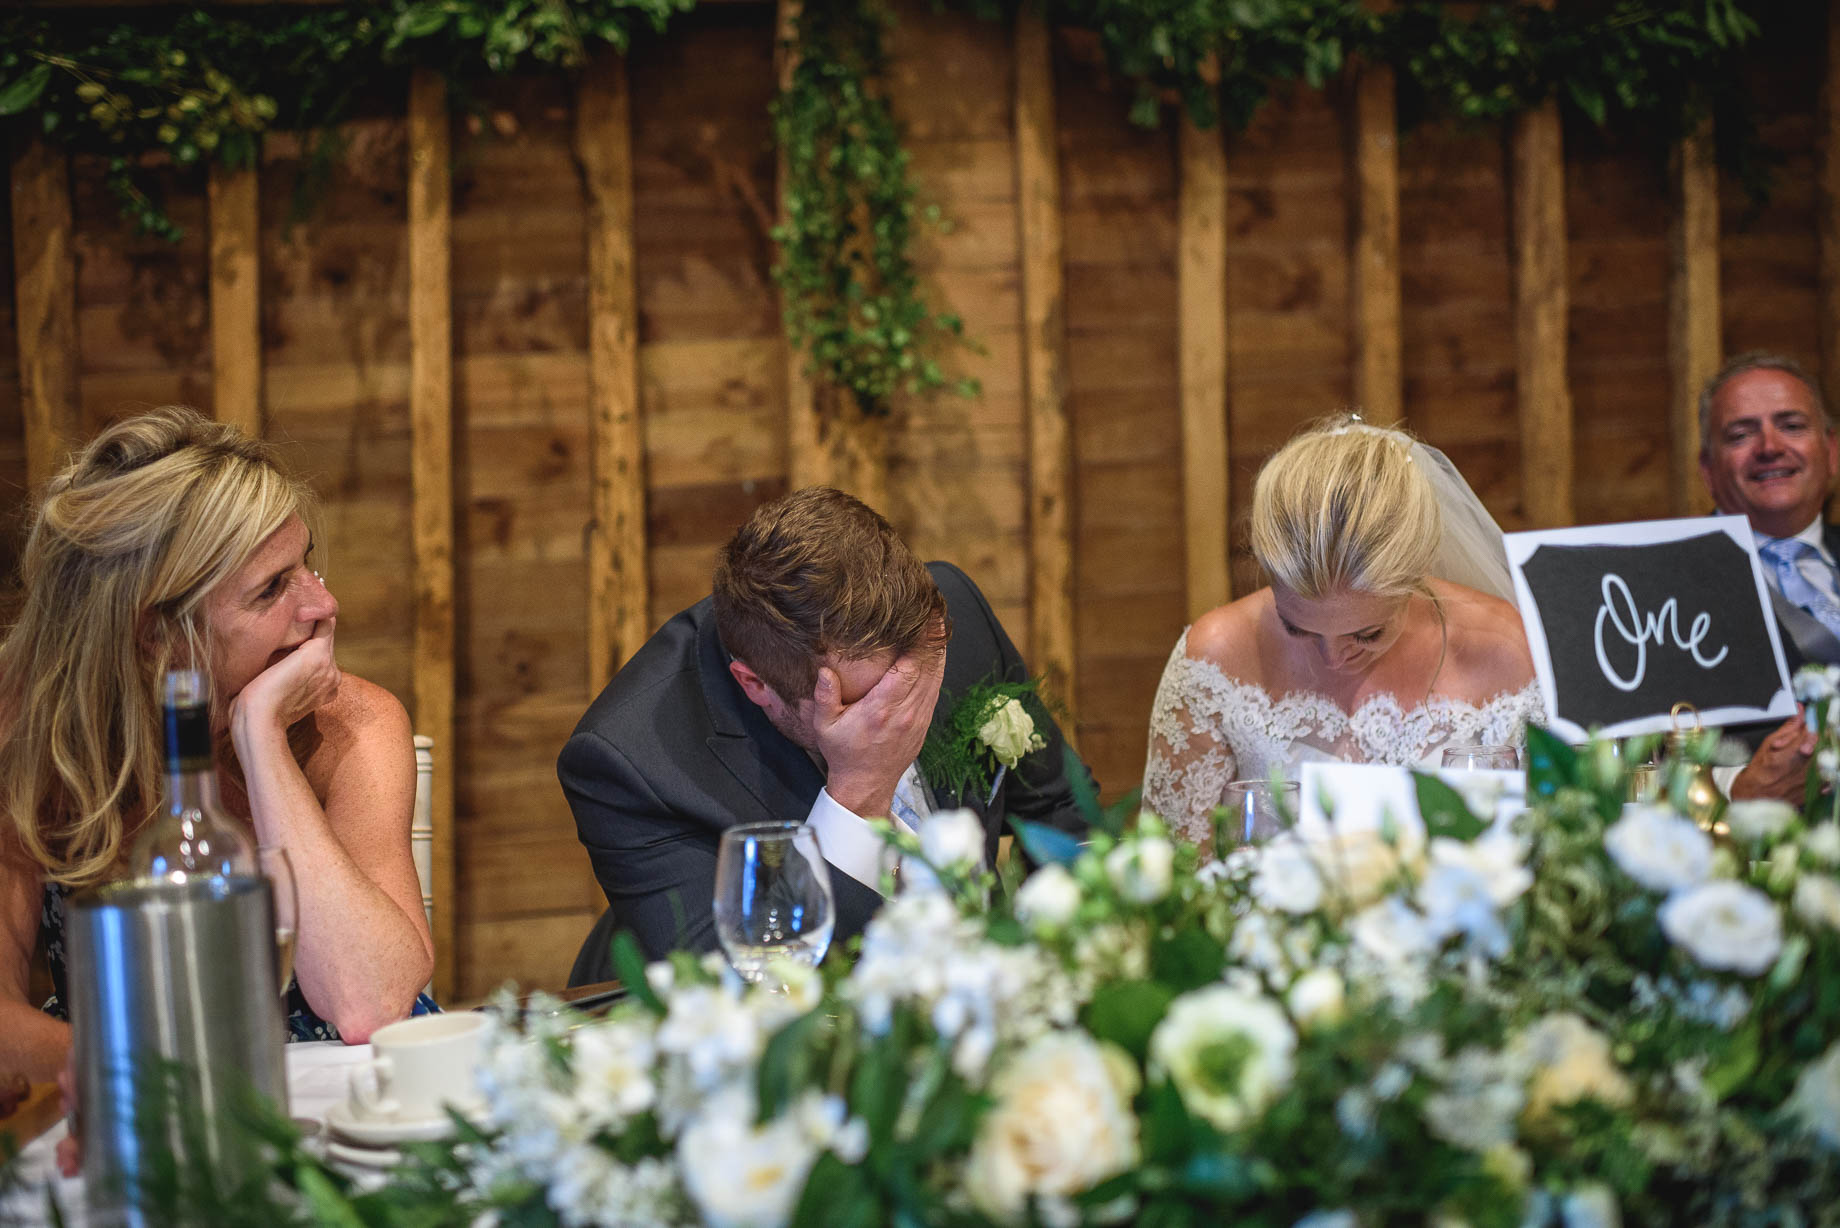 Hertfordshire wedding photography - Hannah + Ollie at Tewin Bury Farm